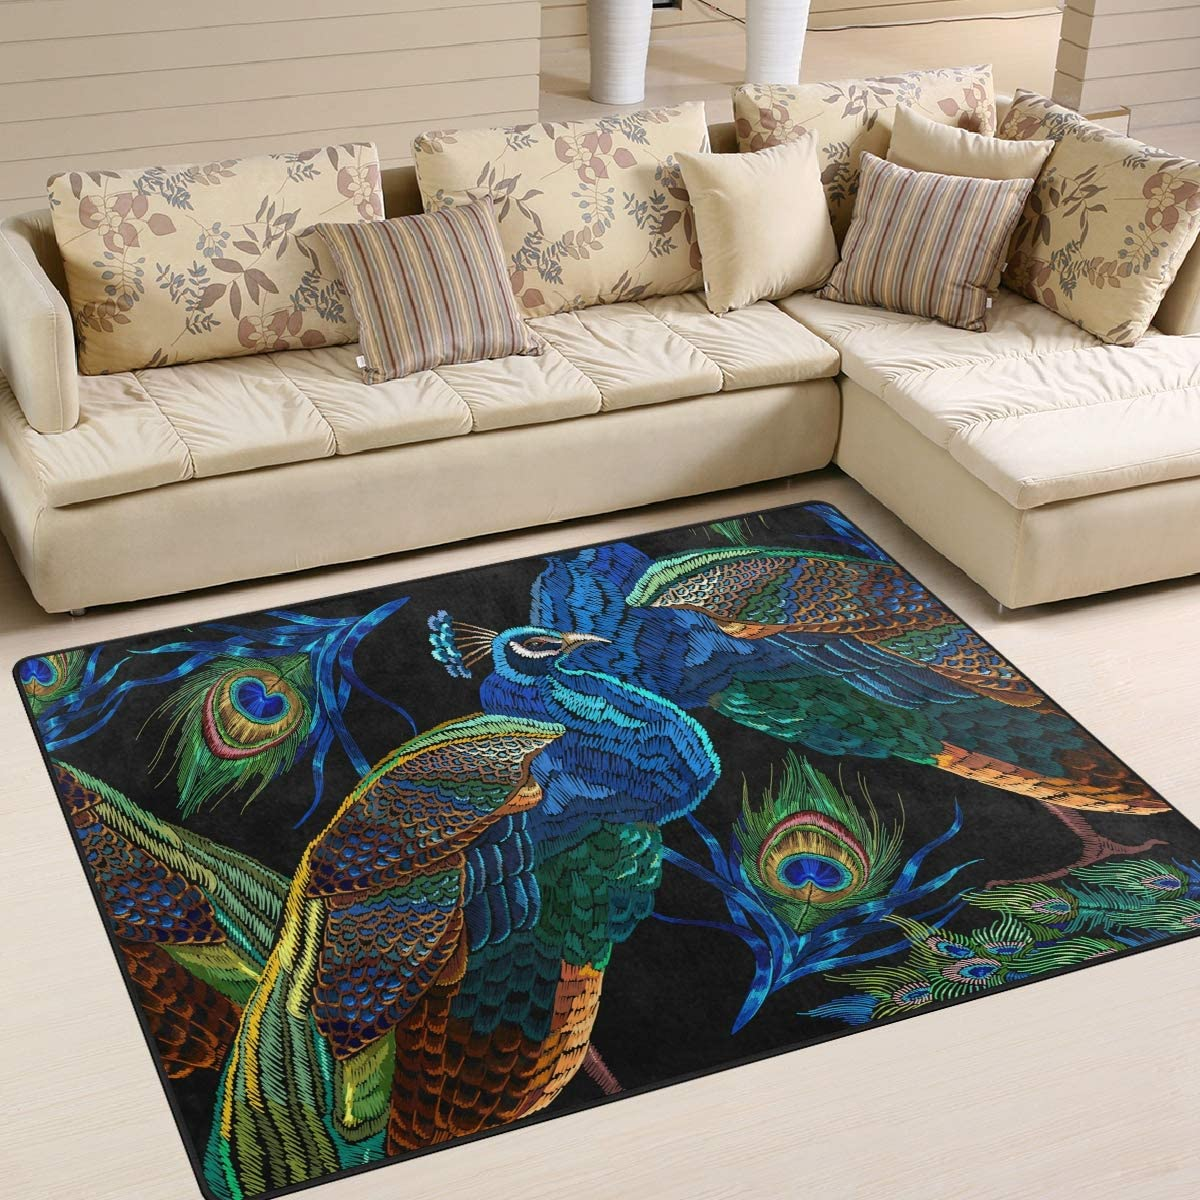 AGONA Blue Peacock Area Rug 5x7 Rugs Louisville-Jefferson County Mall Mode Soft Indoor shop Large